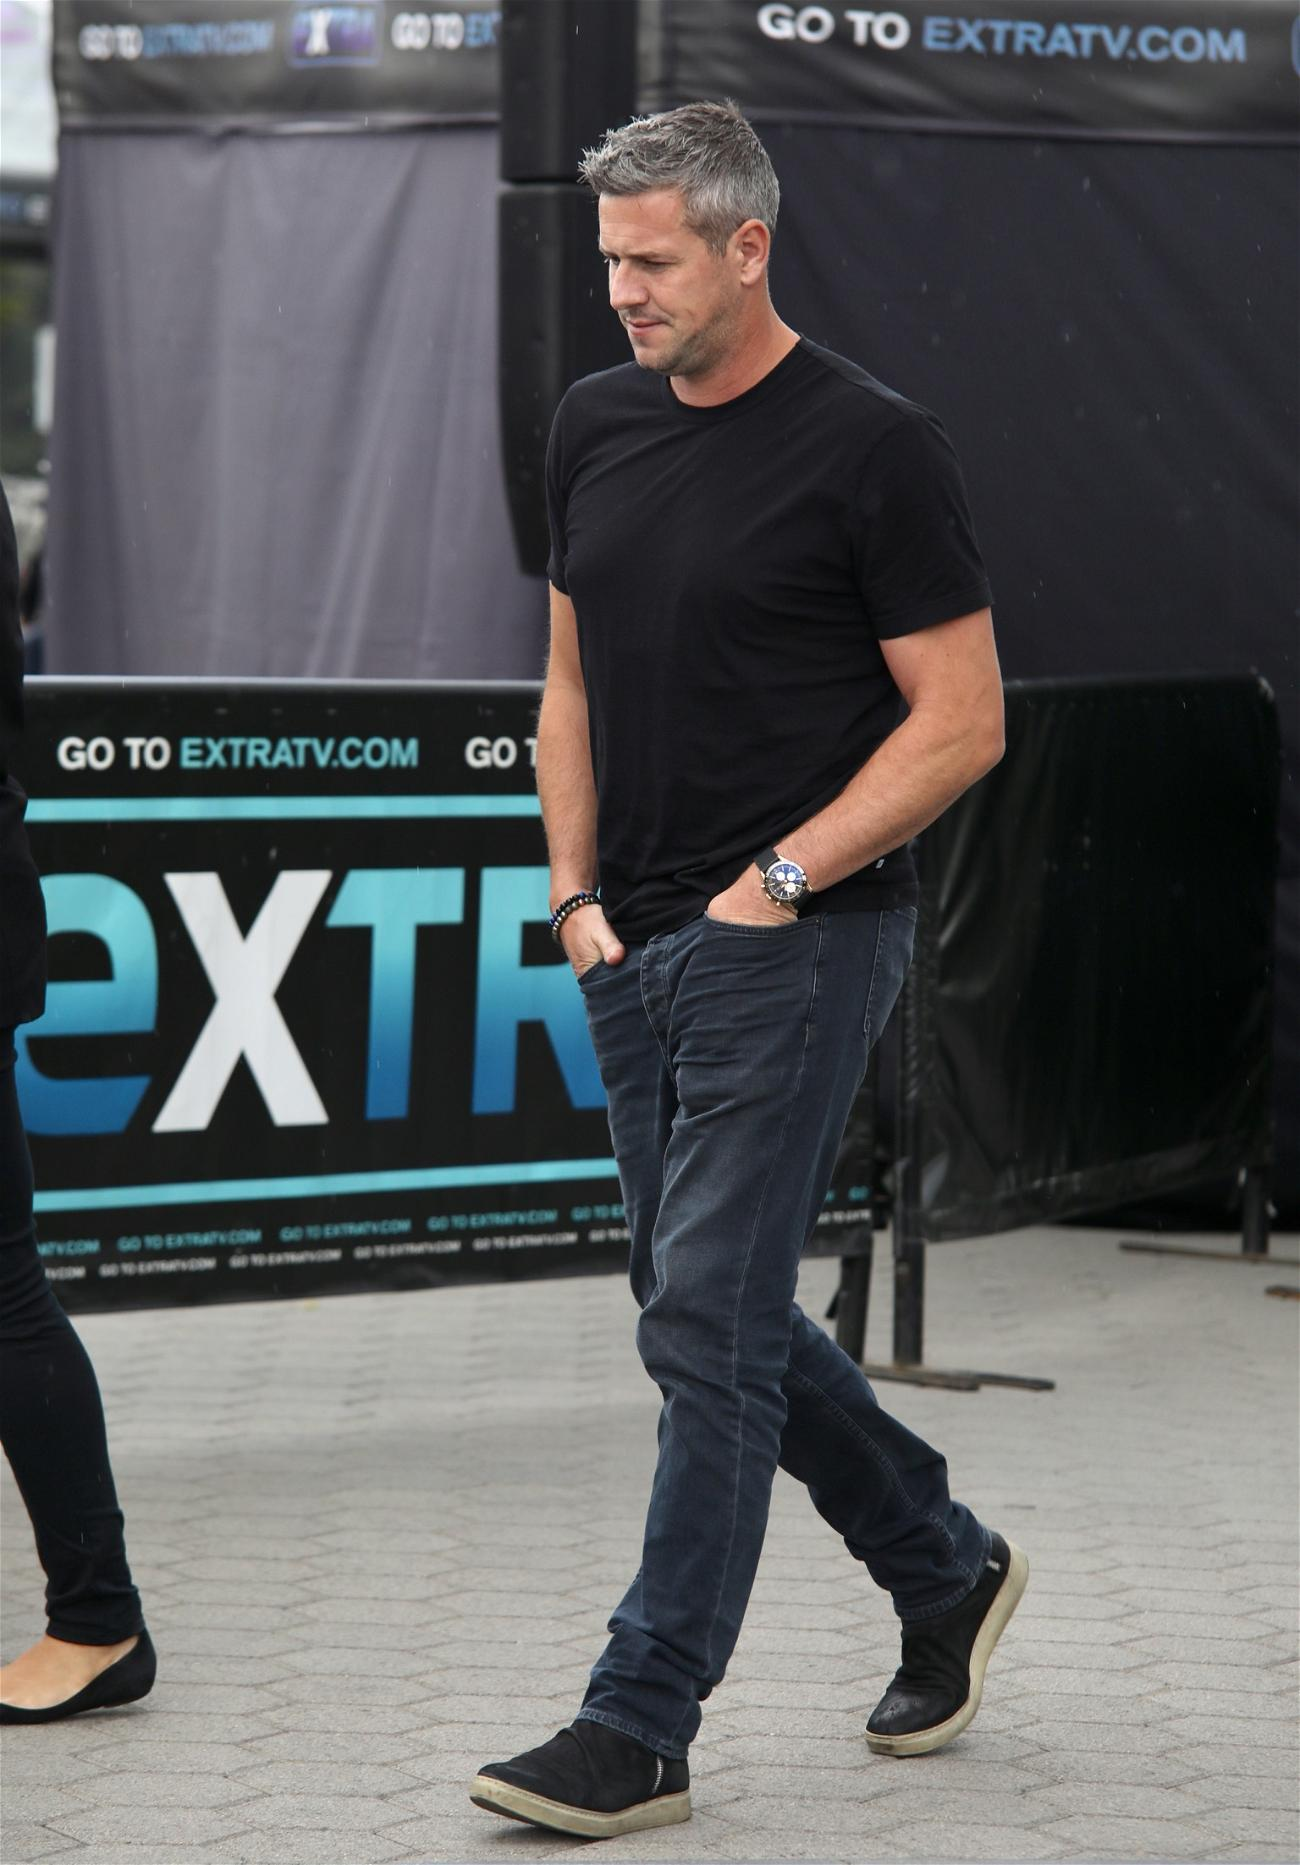 Ant Anstead Reflects On Relationship With Renée Zellweger Says 'He Is Really Grateful'